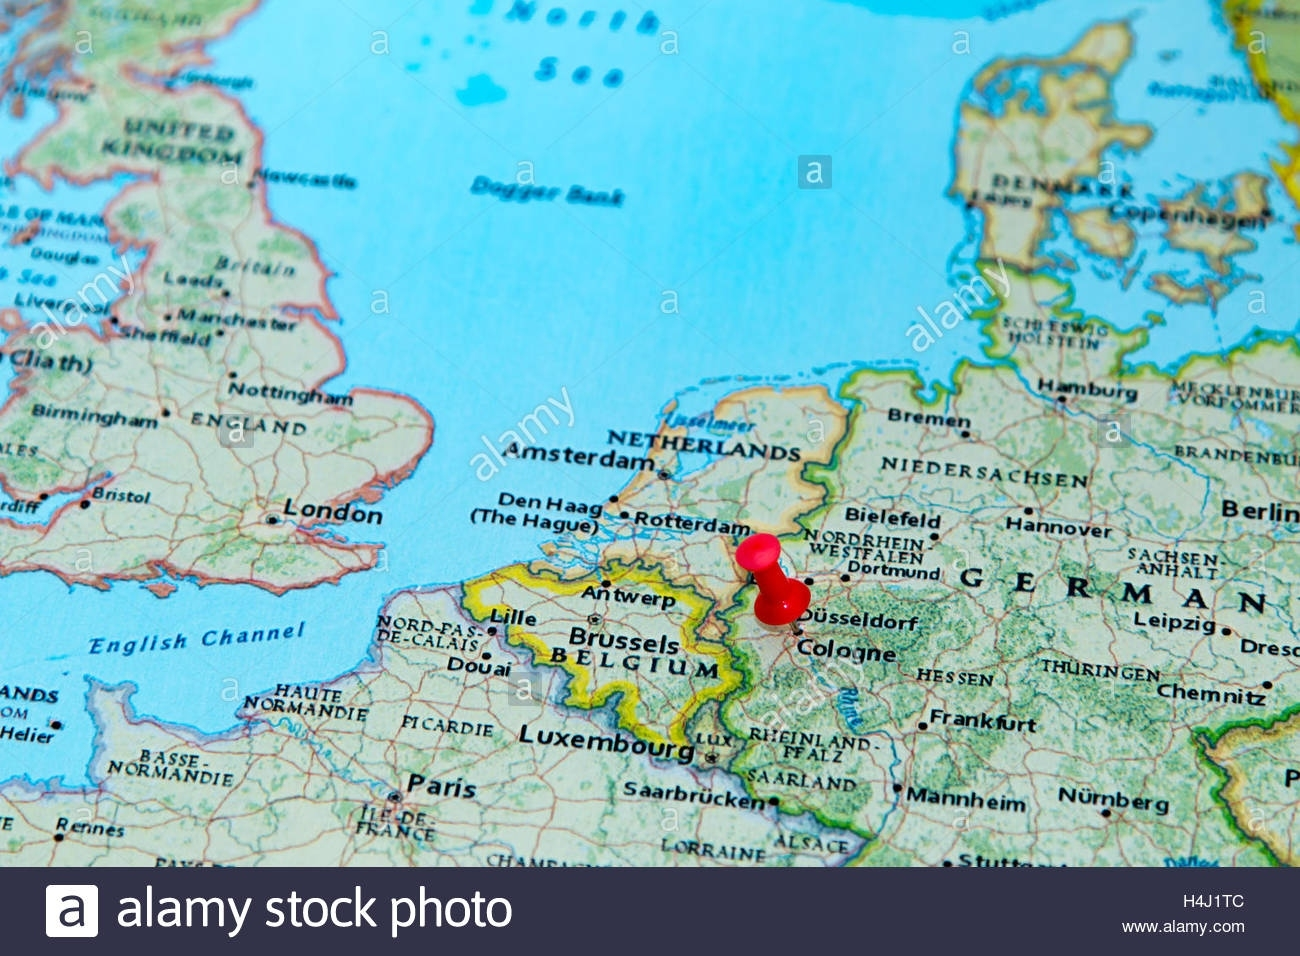 Cologne, Germany Pinned On A Map Of Europe Stock Photo: 123327804 in Cologne Germany Map